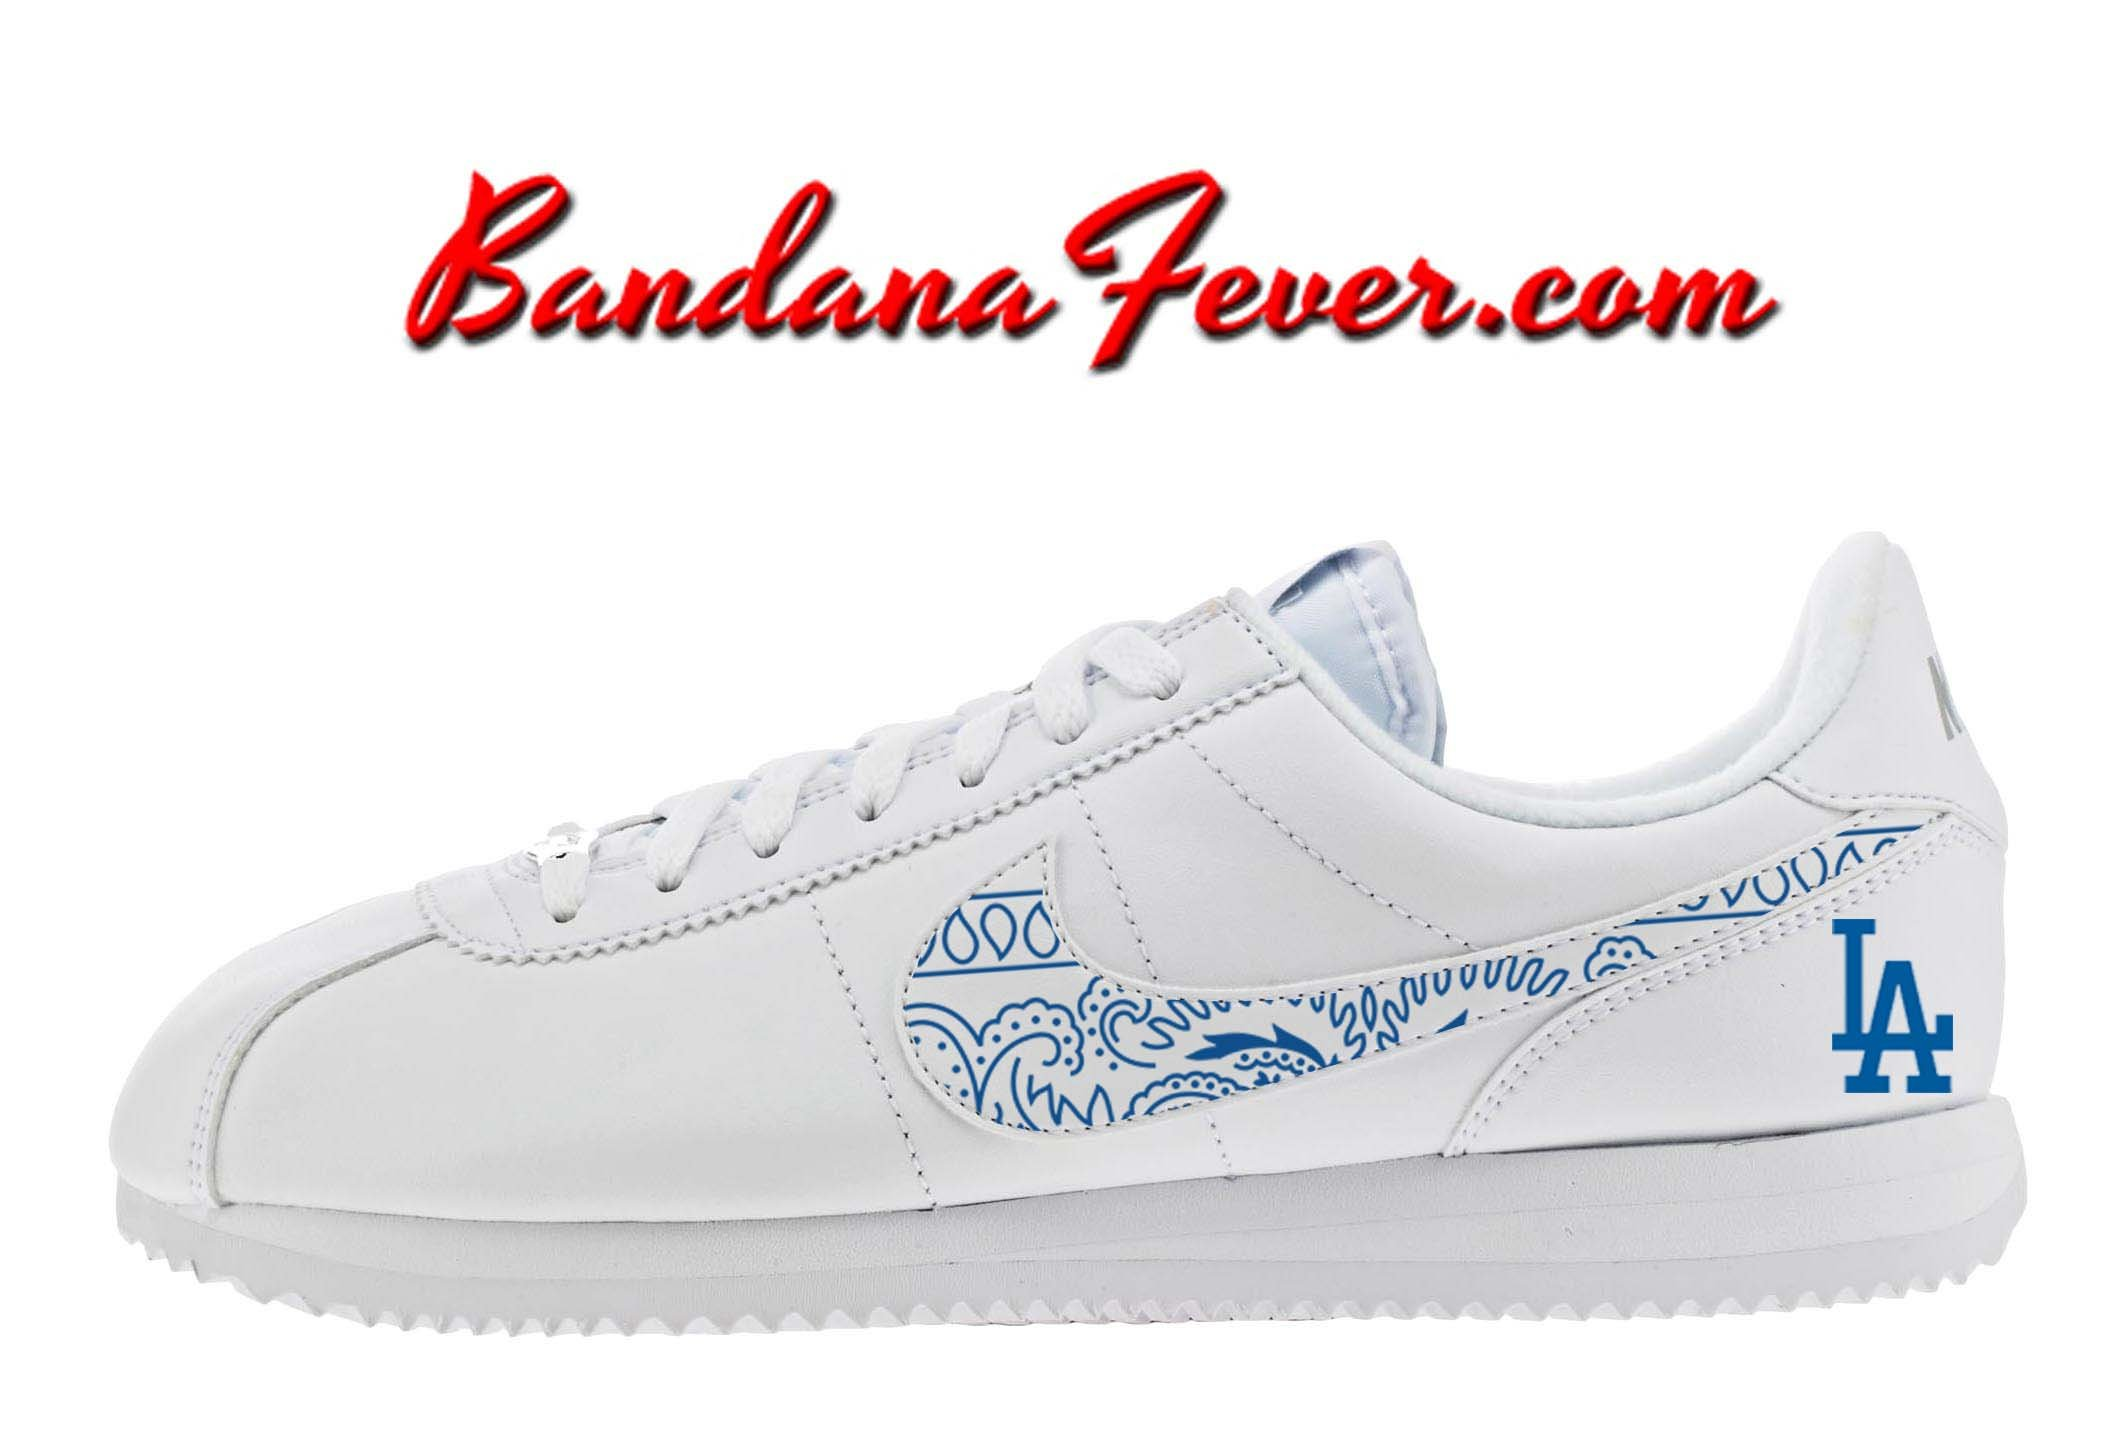 online retailer 07176 0de38 Custom Dodgers Nike Cortez Leather White Grey,  Dodgers,  LADodgers,   dodgerblue, by Bandana Fever